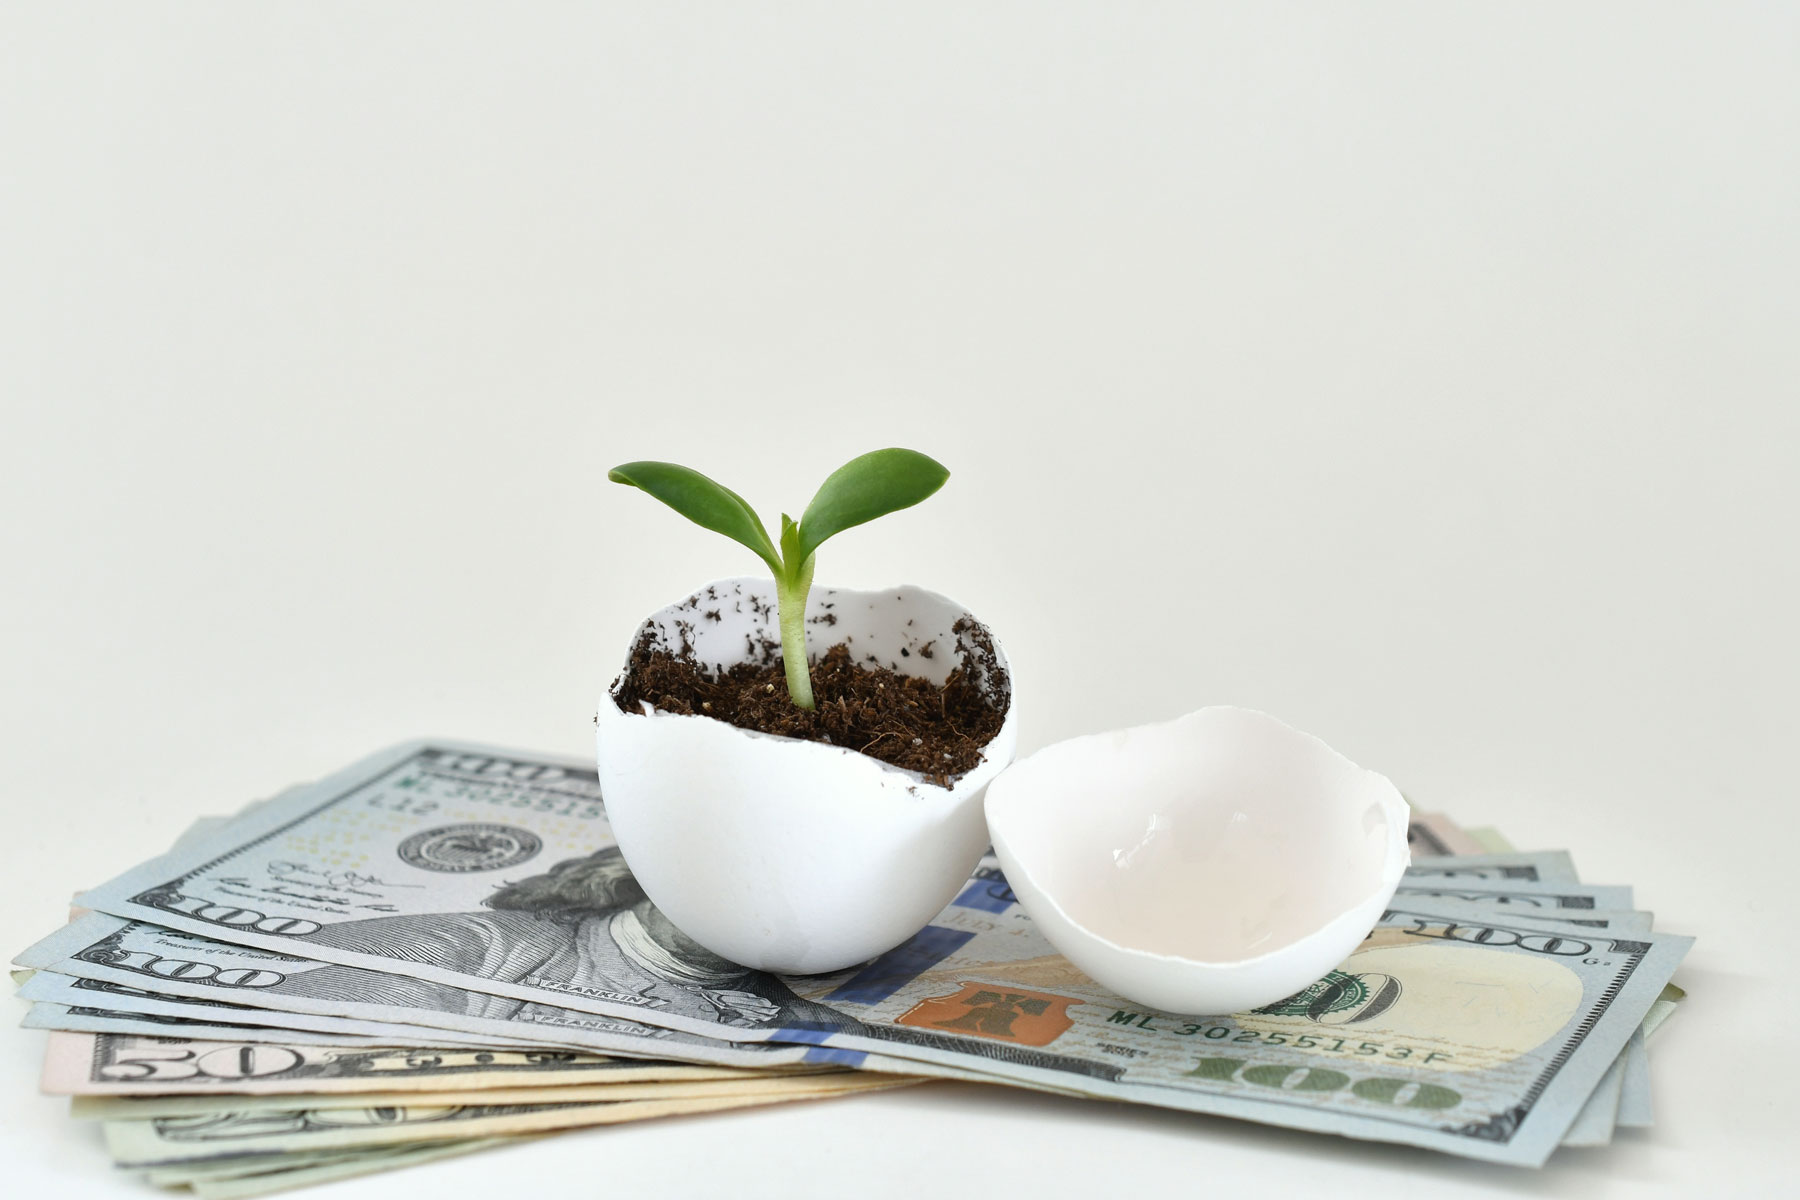 a green plant sitting on top of a pile of money